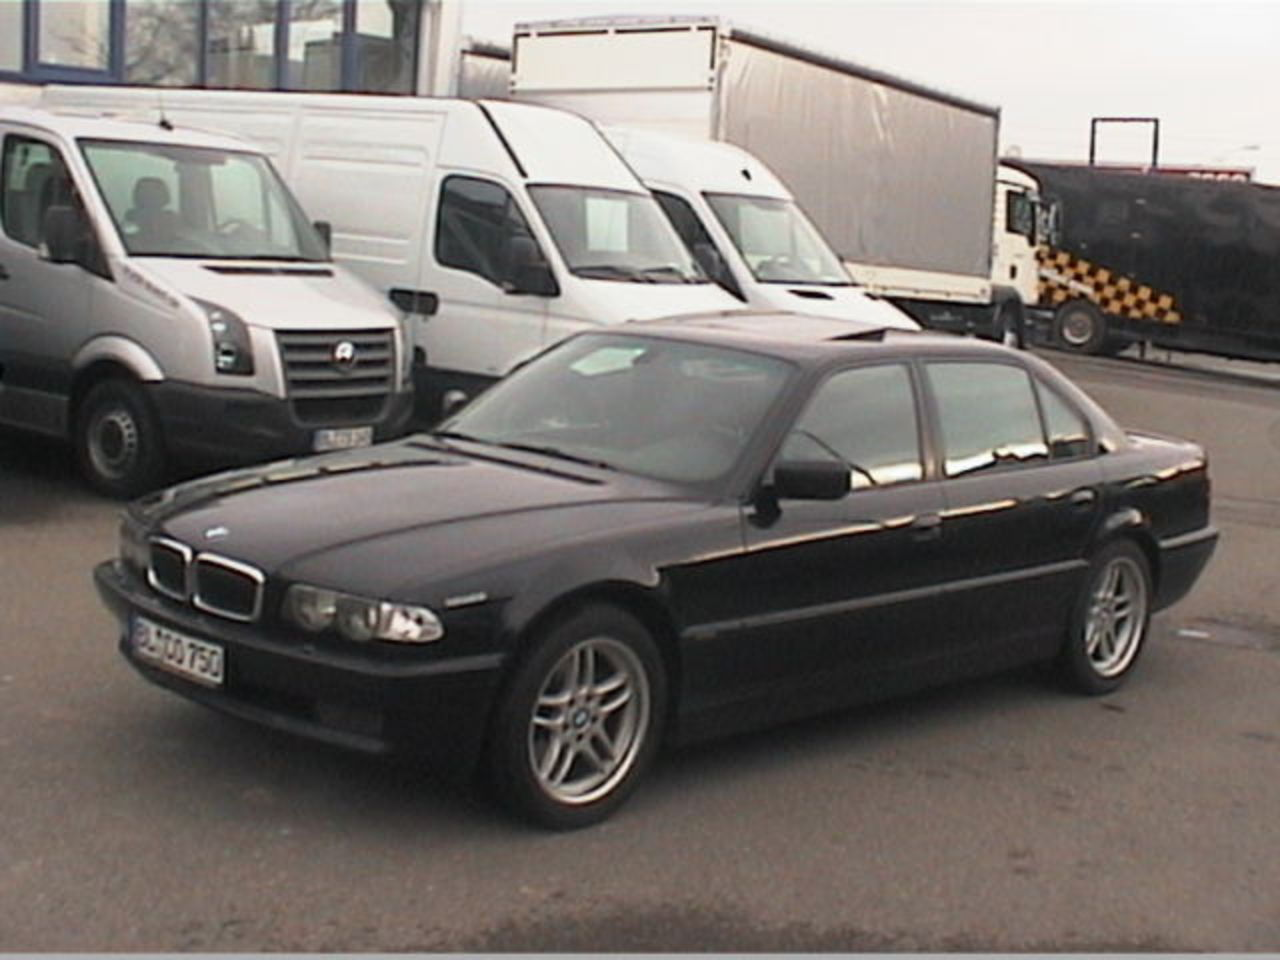 BMW 750 iAL - huge collection of cars, auto news and reviews, car vitals,